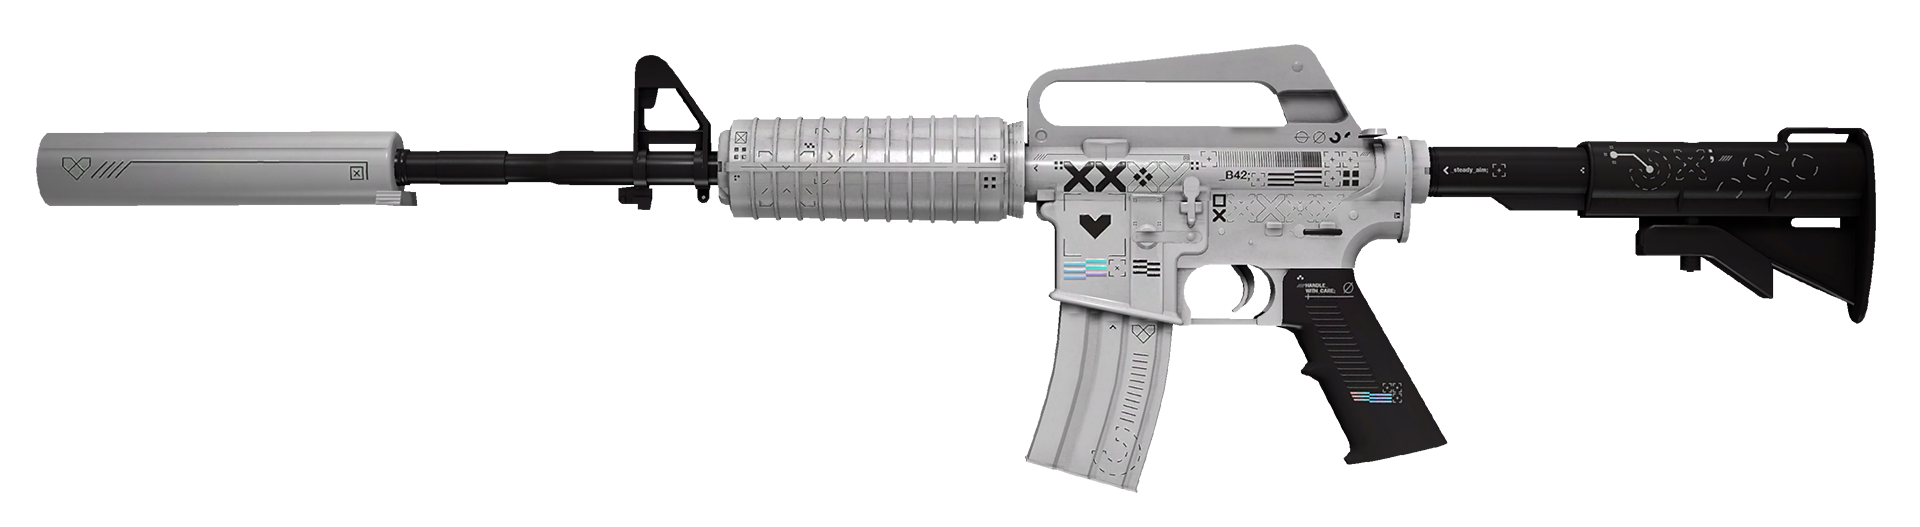 M4A1-S Printstream Large Rendering